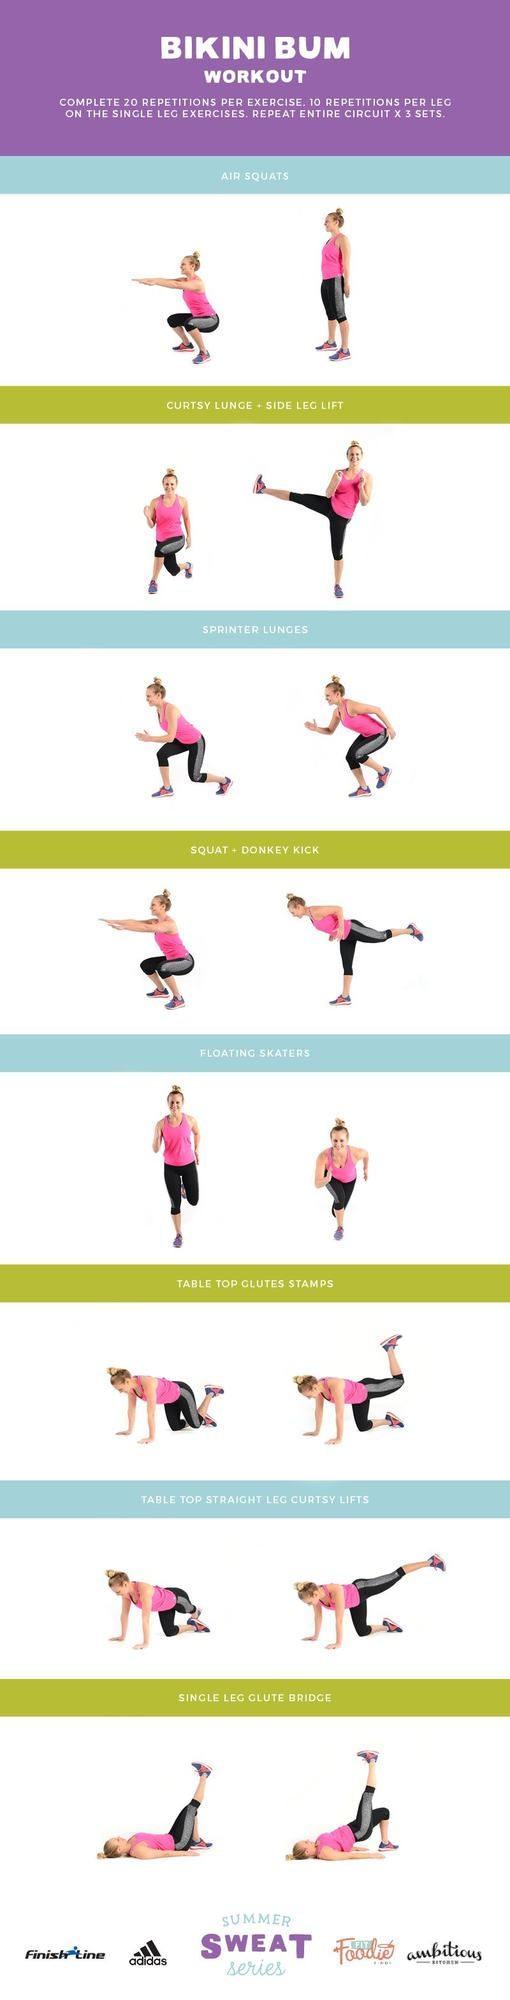 Do this Bikini Bum Workout anywhere at anytime! All you need is your bodyweight and about 30 minutes.